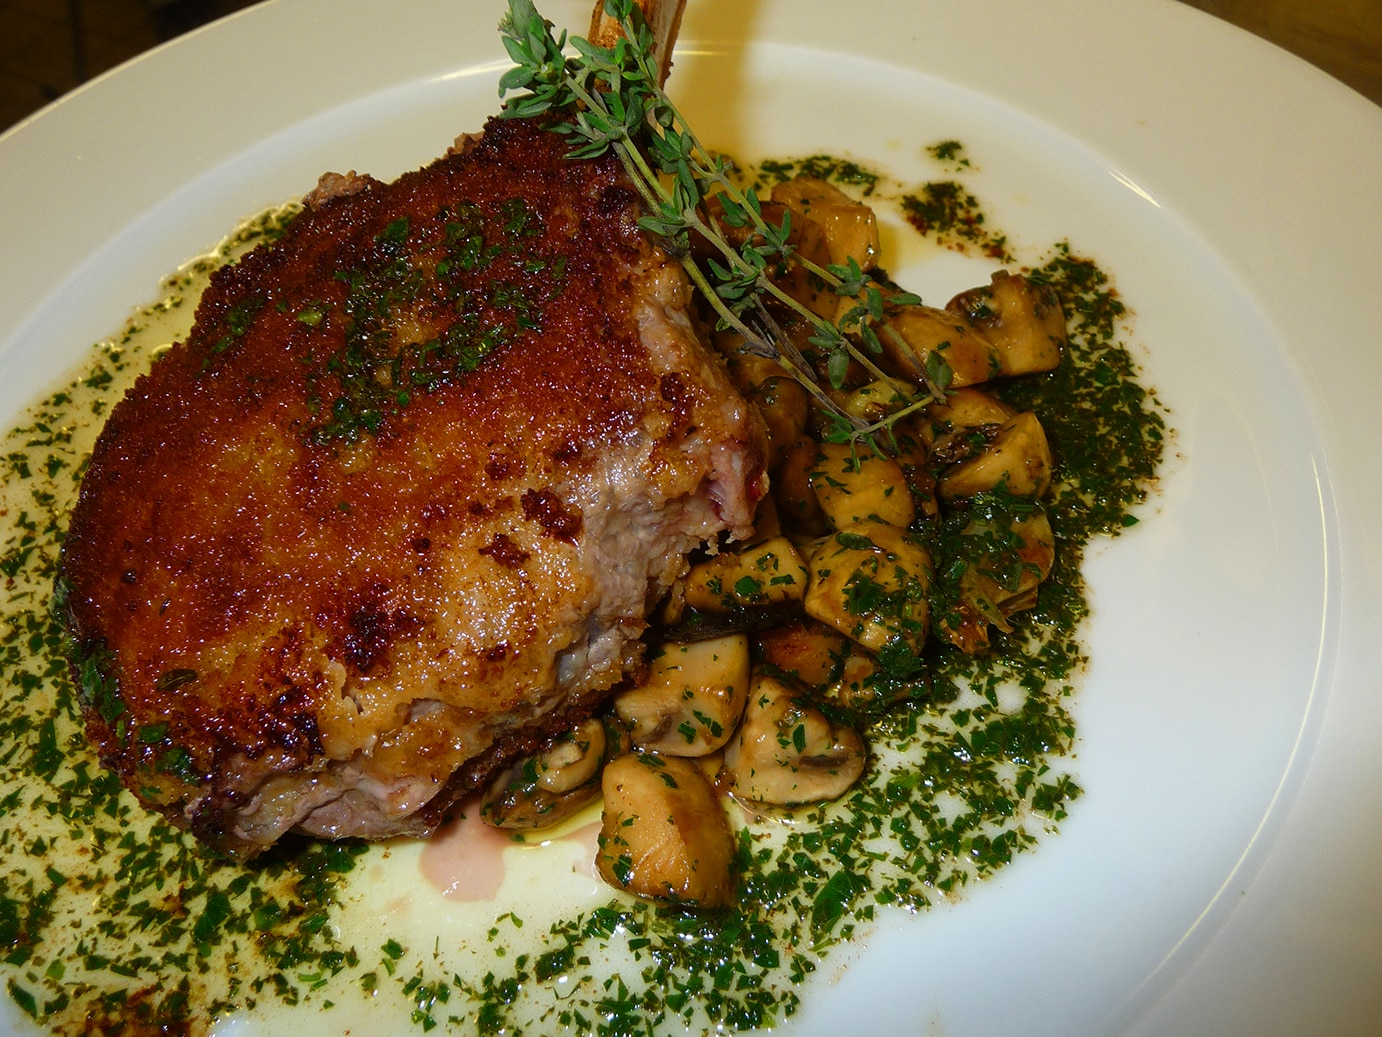 Veal cutlets with mushrooms and comté